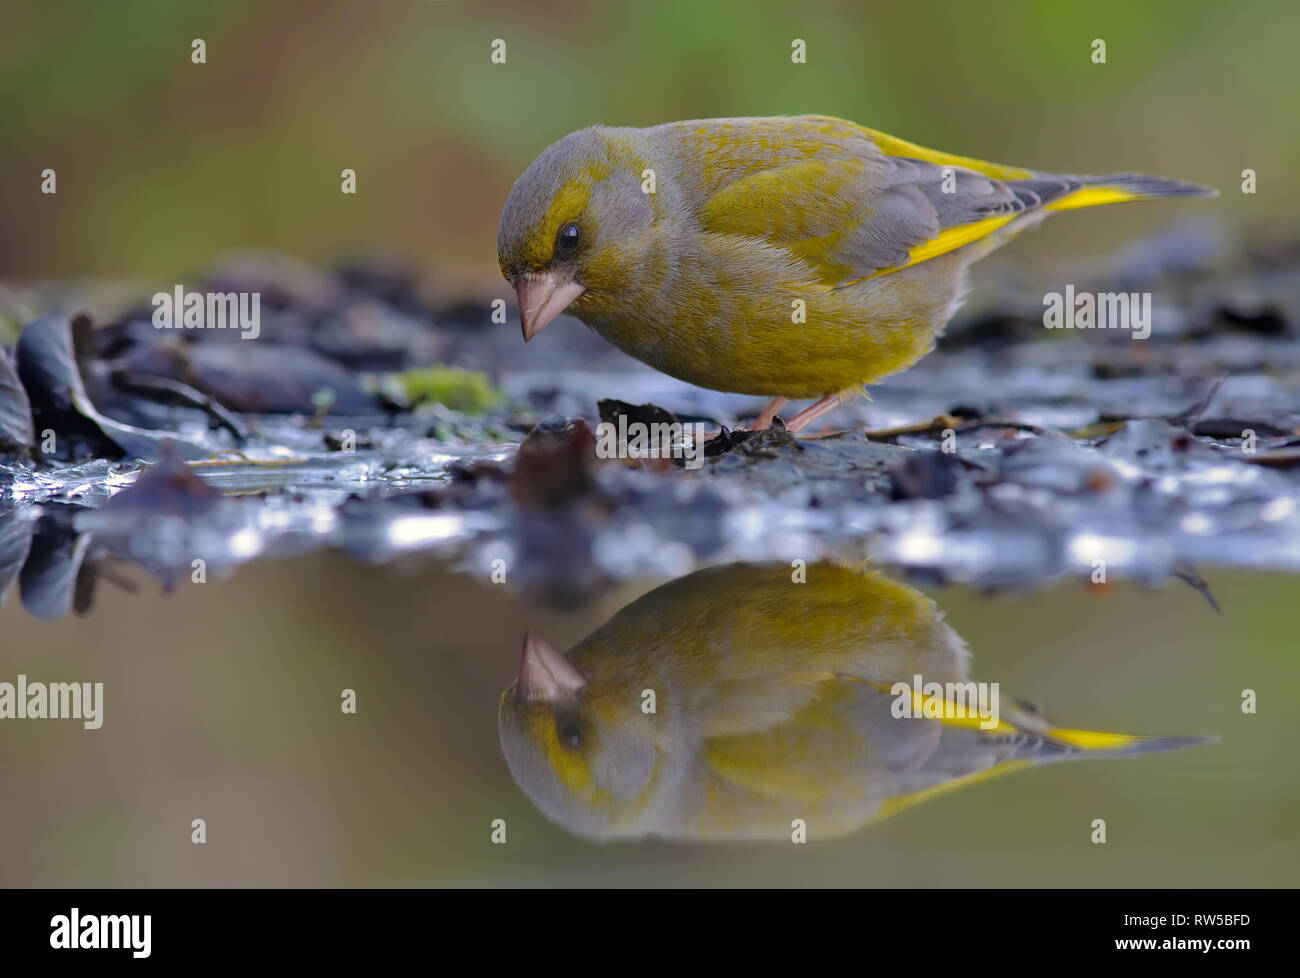 European greenfinch looking at his reflection in water pond - Stock Image